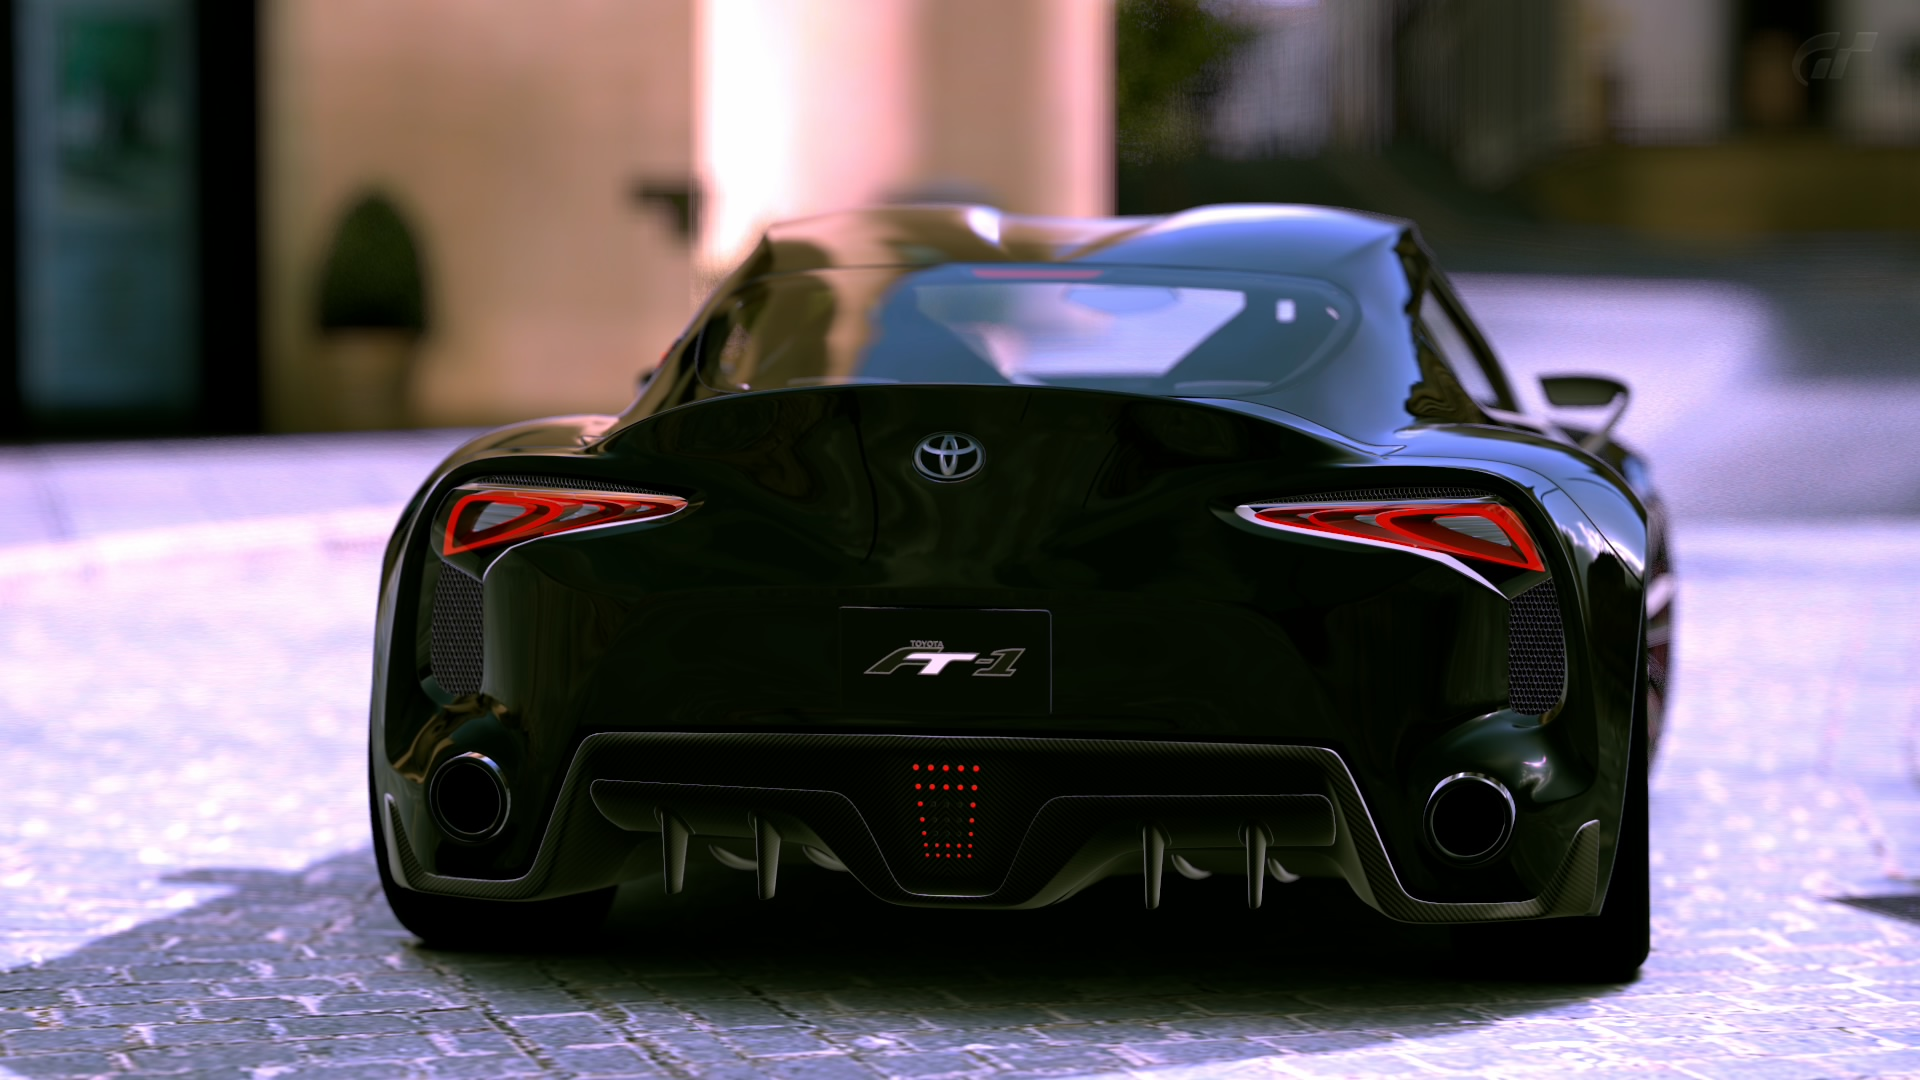 Toyota Supra 2014 FT 1 wallpaper